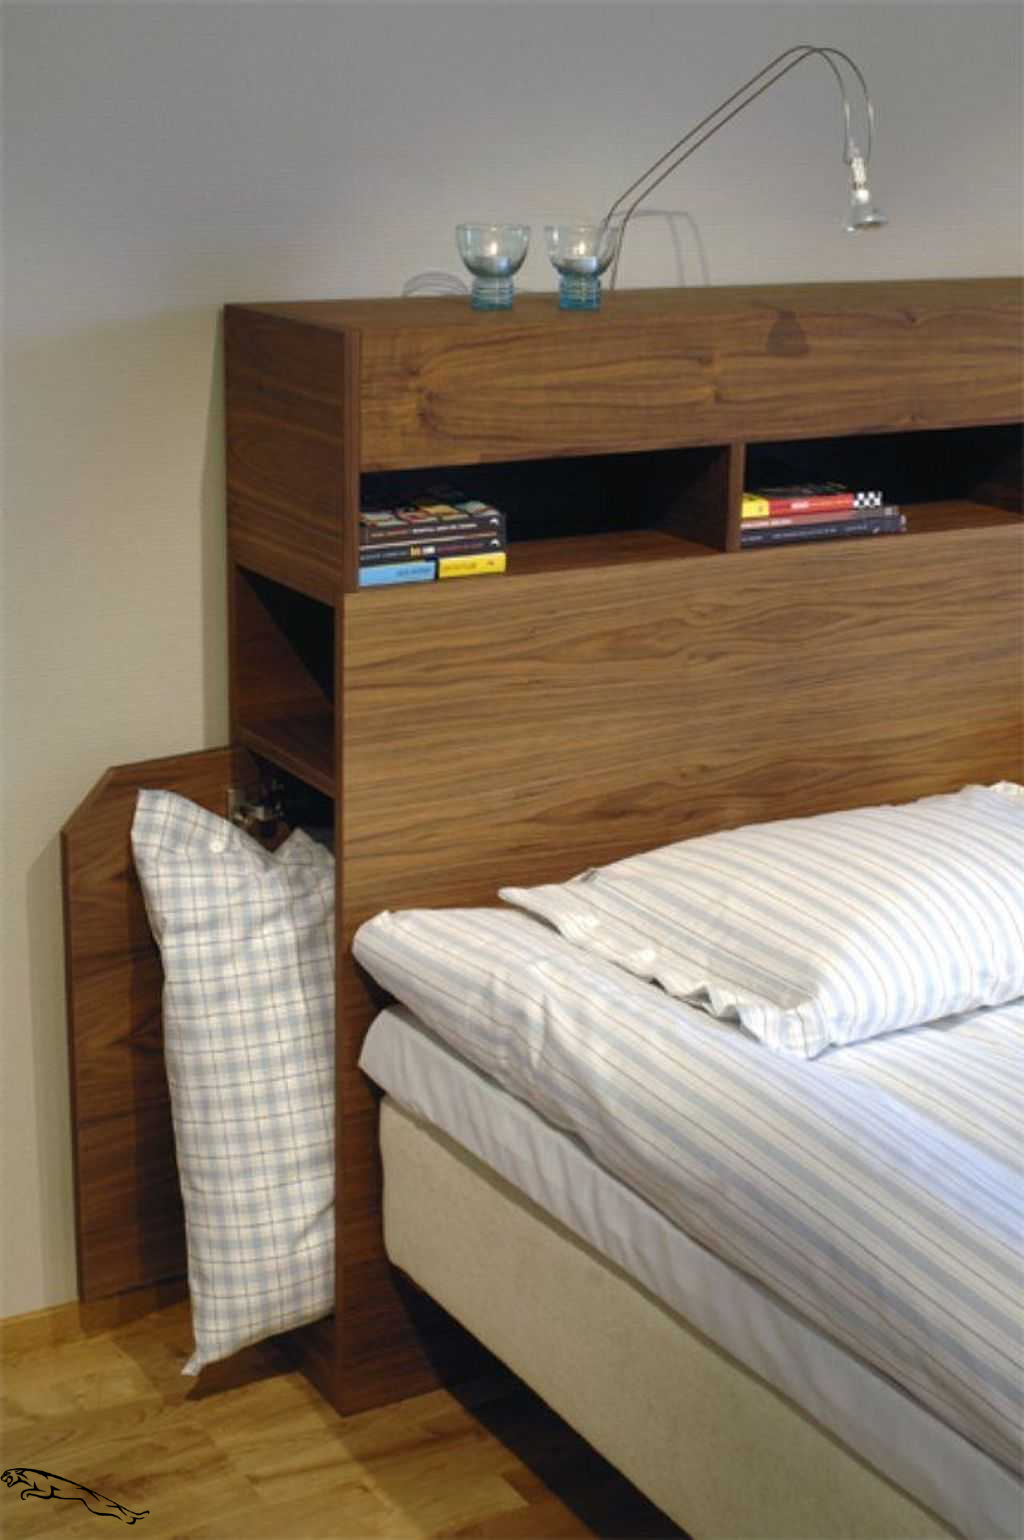 Small Bedside Table Ideas: 34 Modern Plywood Bedside Table Design Ideas For Bedroom